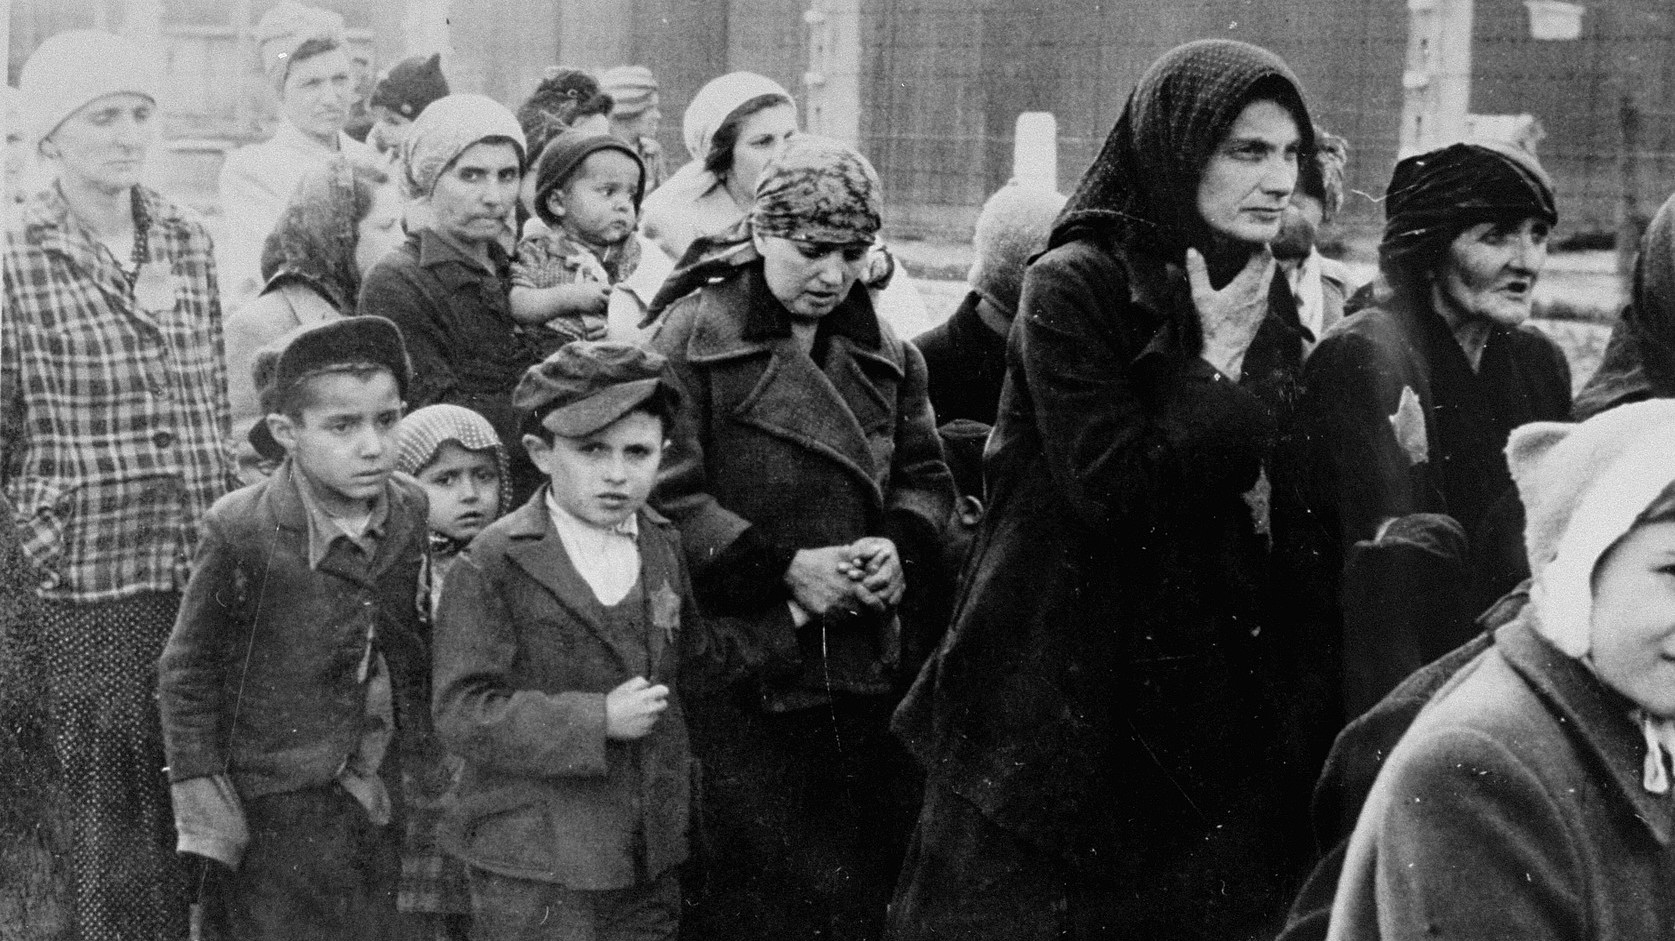 Remembering the victims of the Holocaust